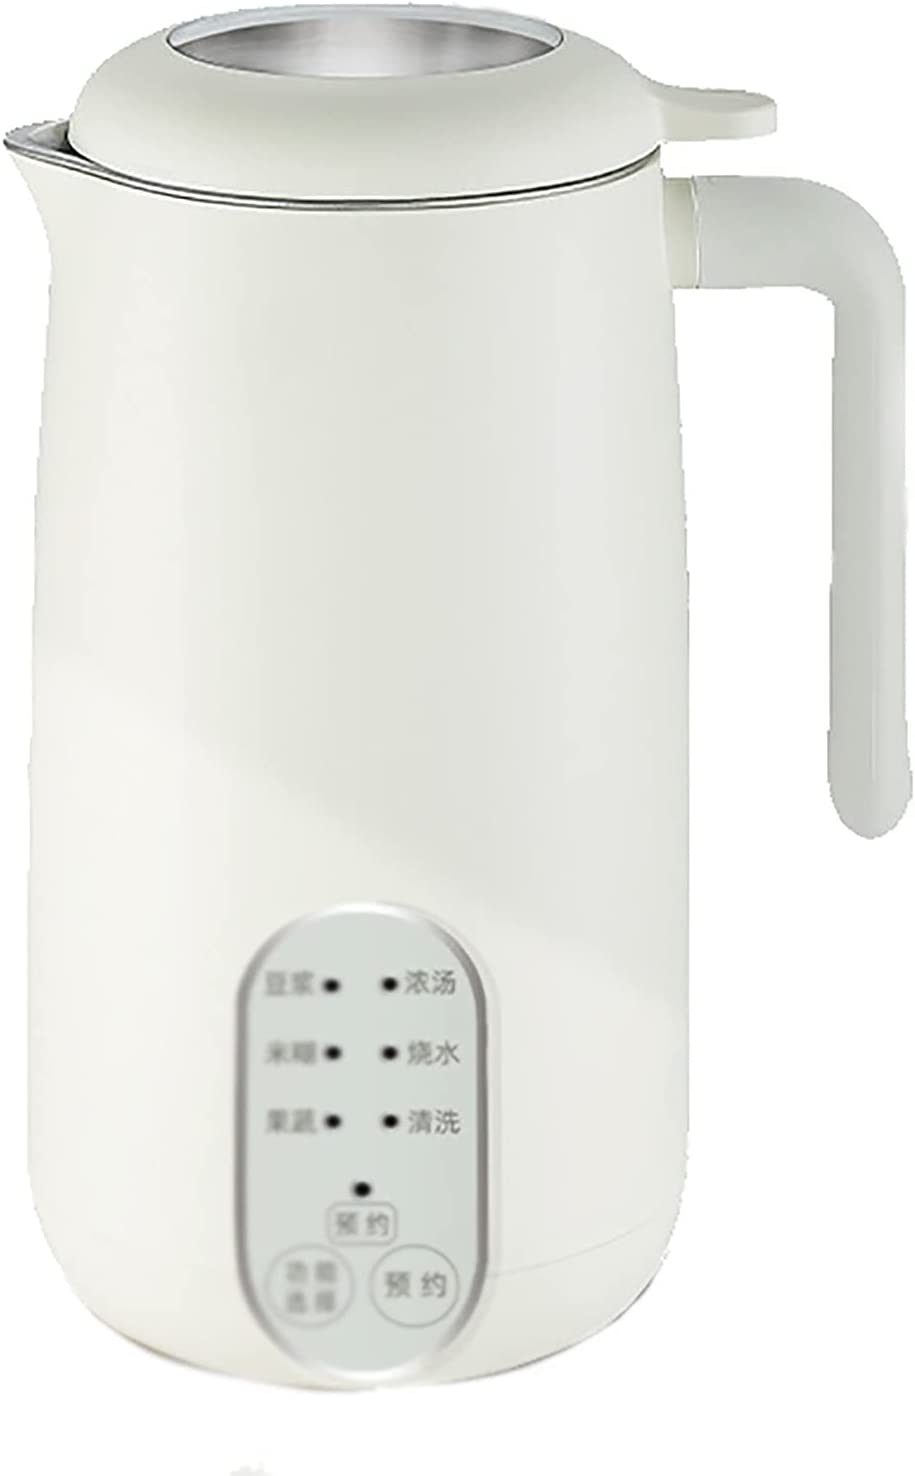 5 ☆ very popular 25% OFF Soy Milk Maker Soymilk Machine Small Automatic Silent Portable H